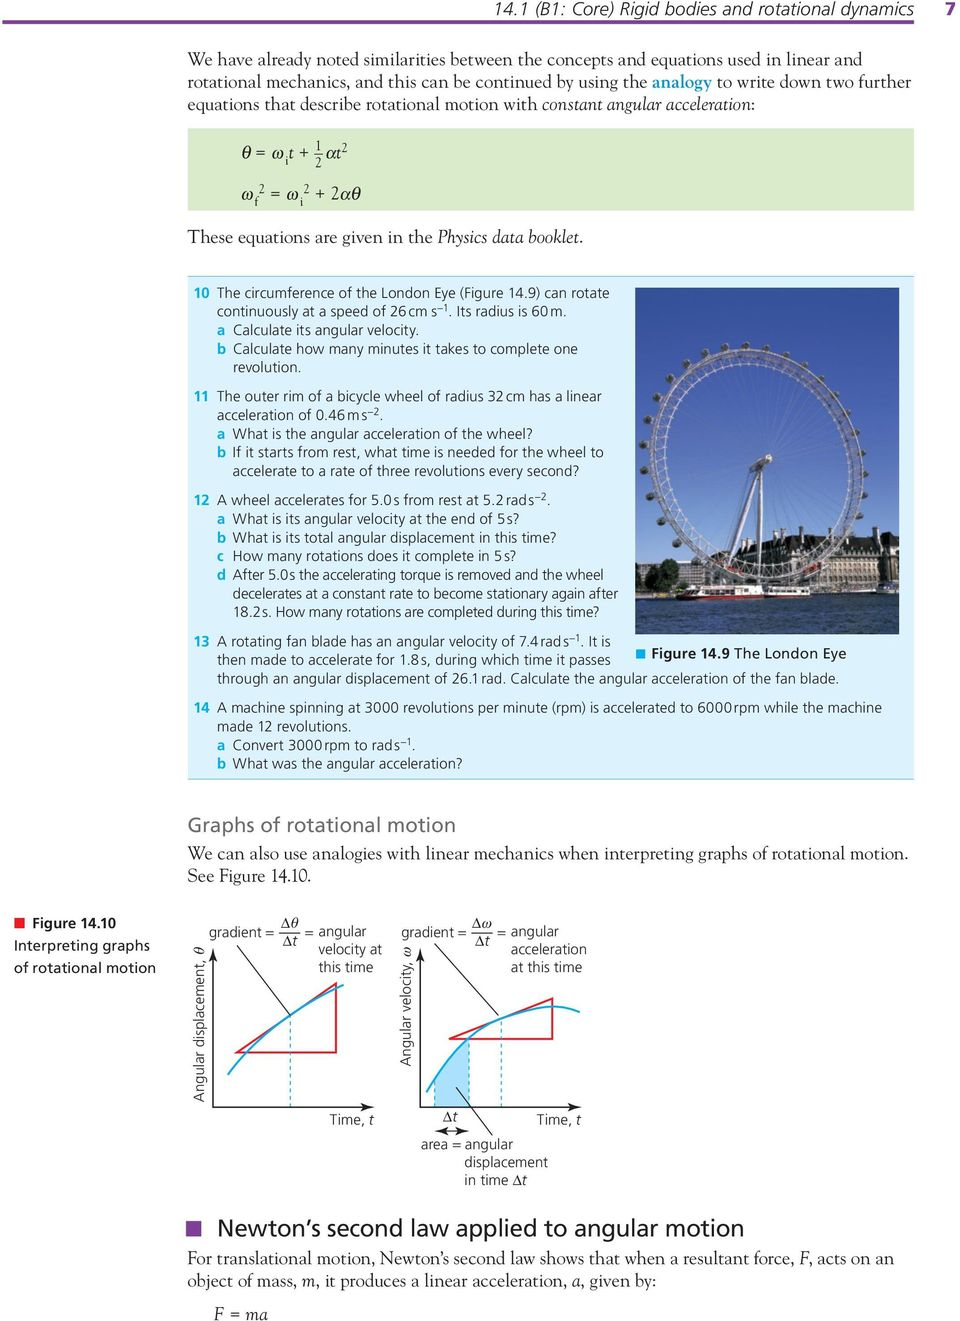 Physics data booklet. 10 The circumference of the London Eye (Figure 14.9) can rotate continuously at a speed of 26 cm s 1. Its radius is 60 m. a Calculate its angular velocity.